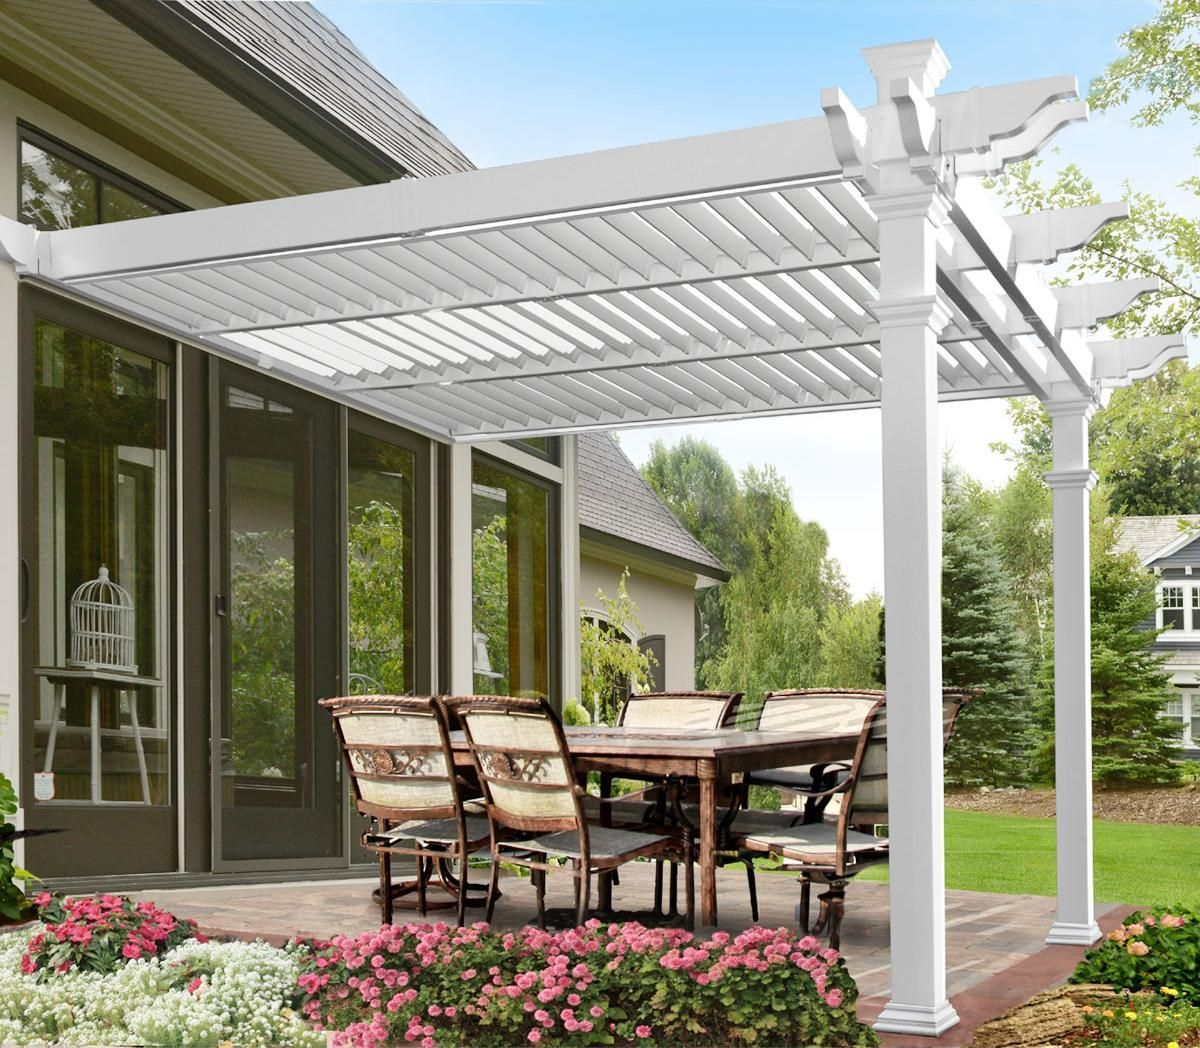 144 Inch W X 141 Inch D X 104 Inch H Elysium 12 X 12 Attached Louvered Pergola Louvered Pergola Backyard Pergola Pergola Patio